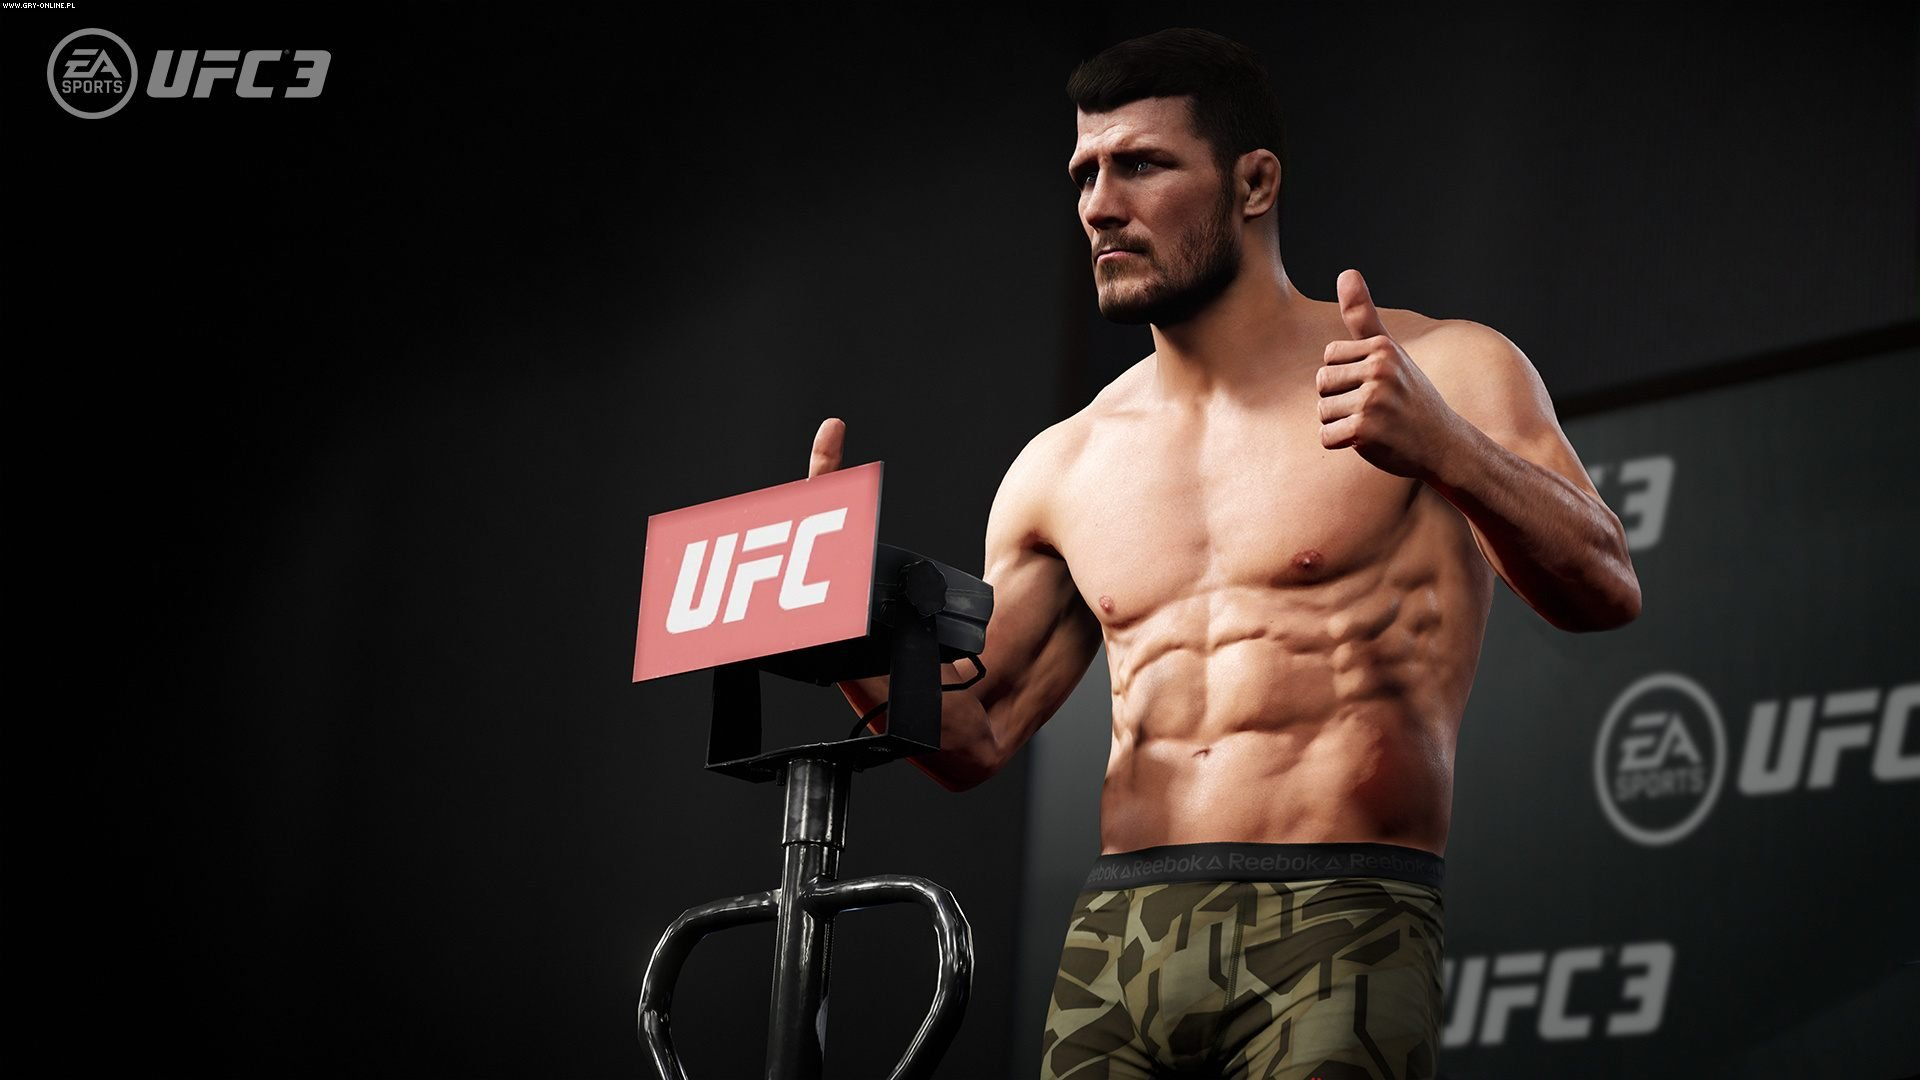 EA Sports UFC 3 PS4, XONE Games Image 6/8, EA Sports, Electronic Arts Inc.